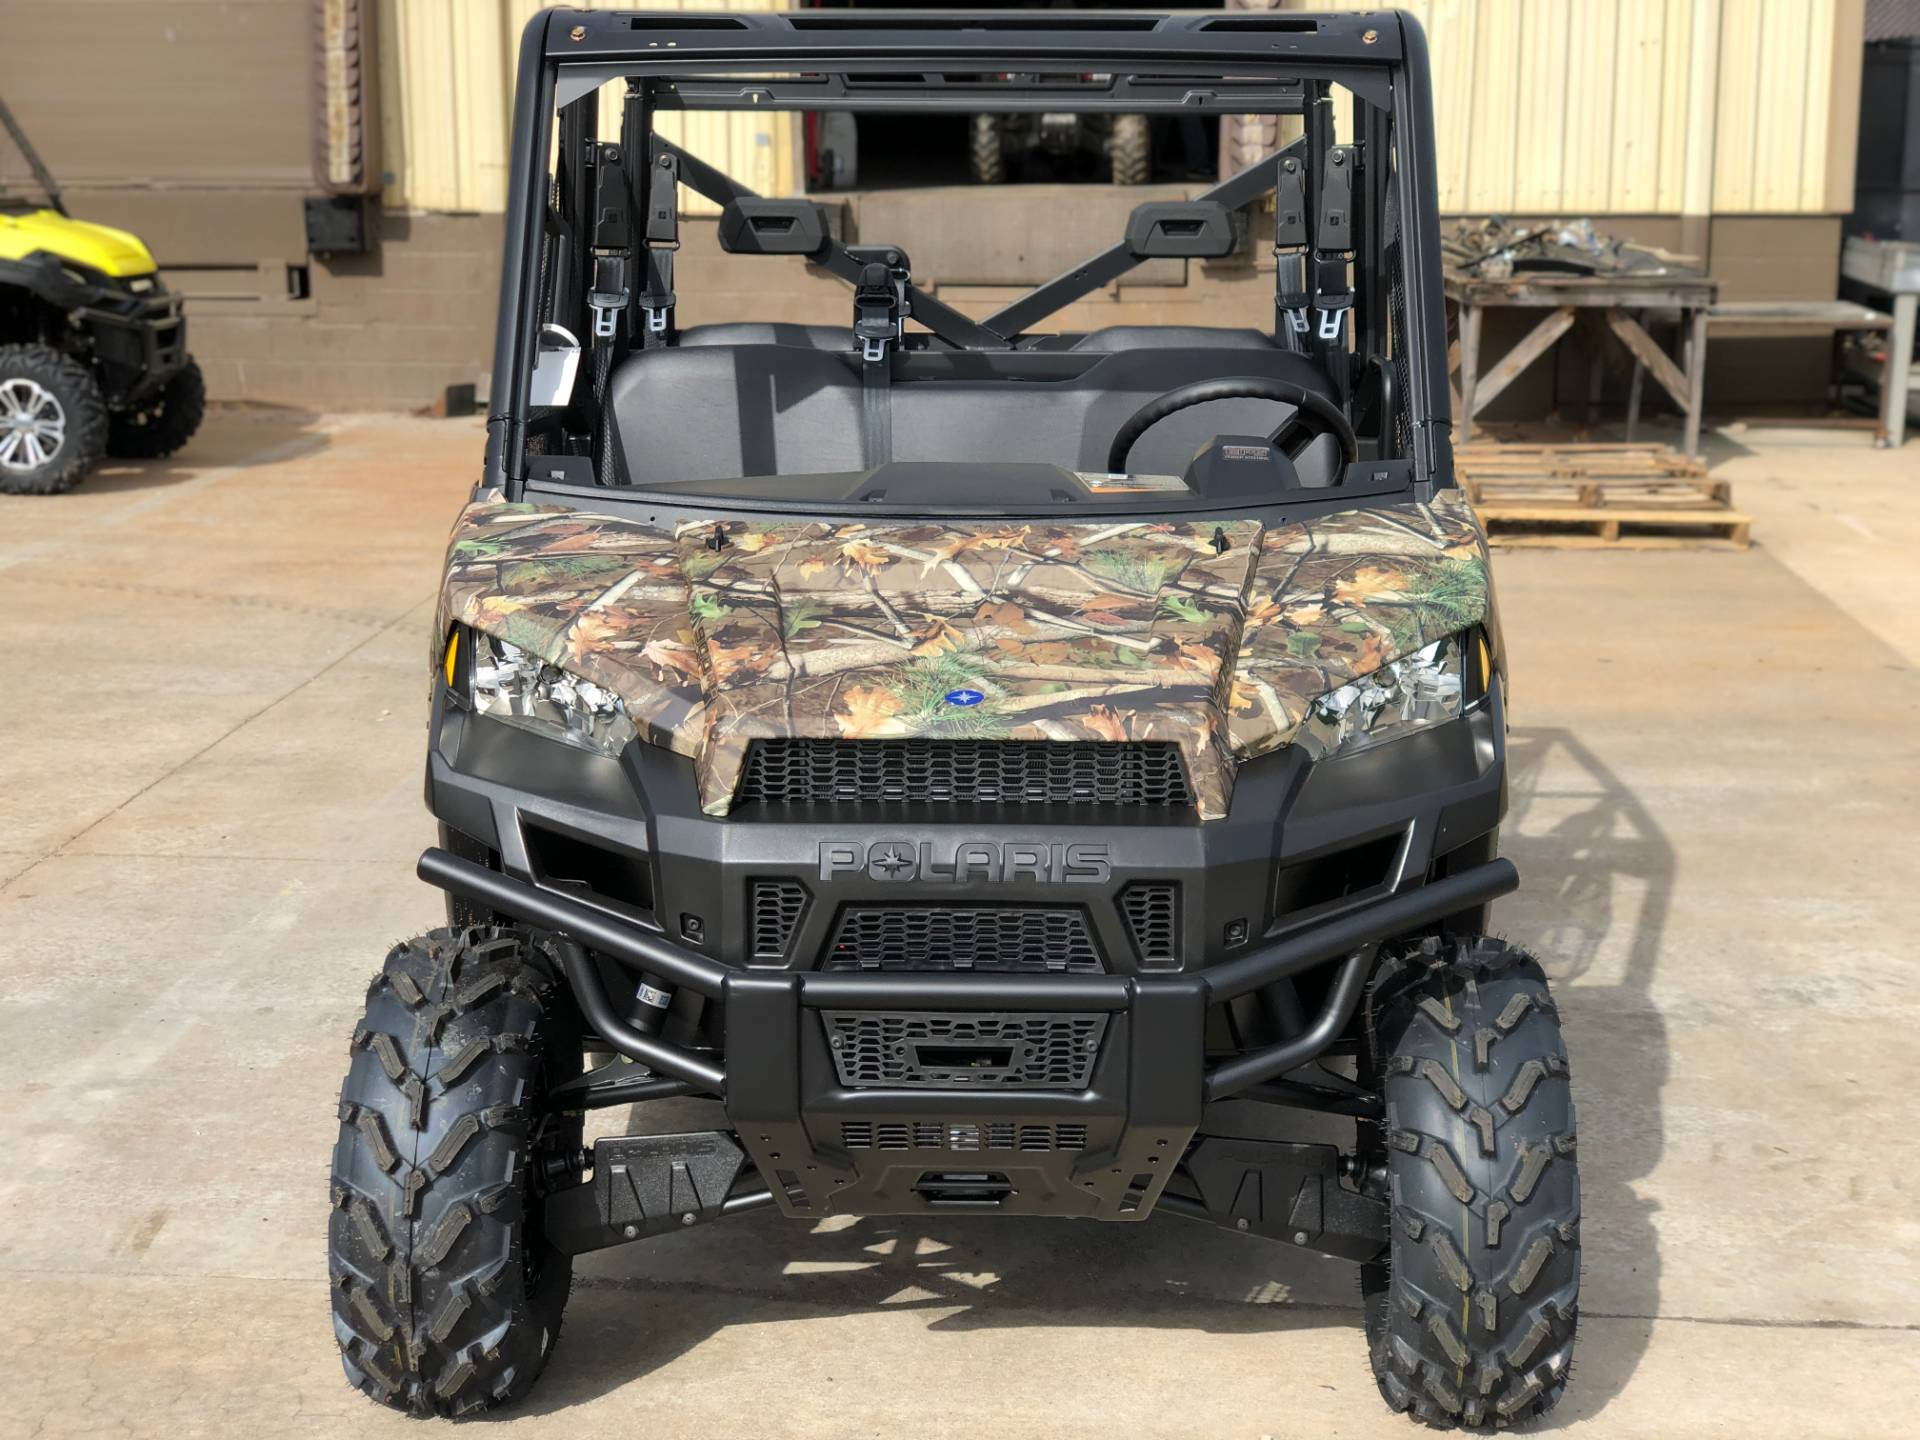 2019 Polaris Ranger Crew XP 900 EPS in Statesville, North Carolina - Photo 1